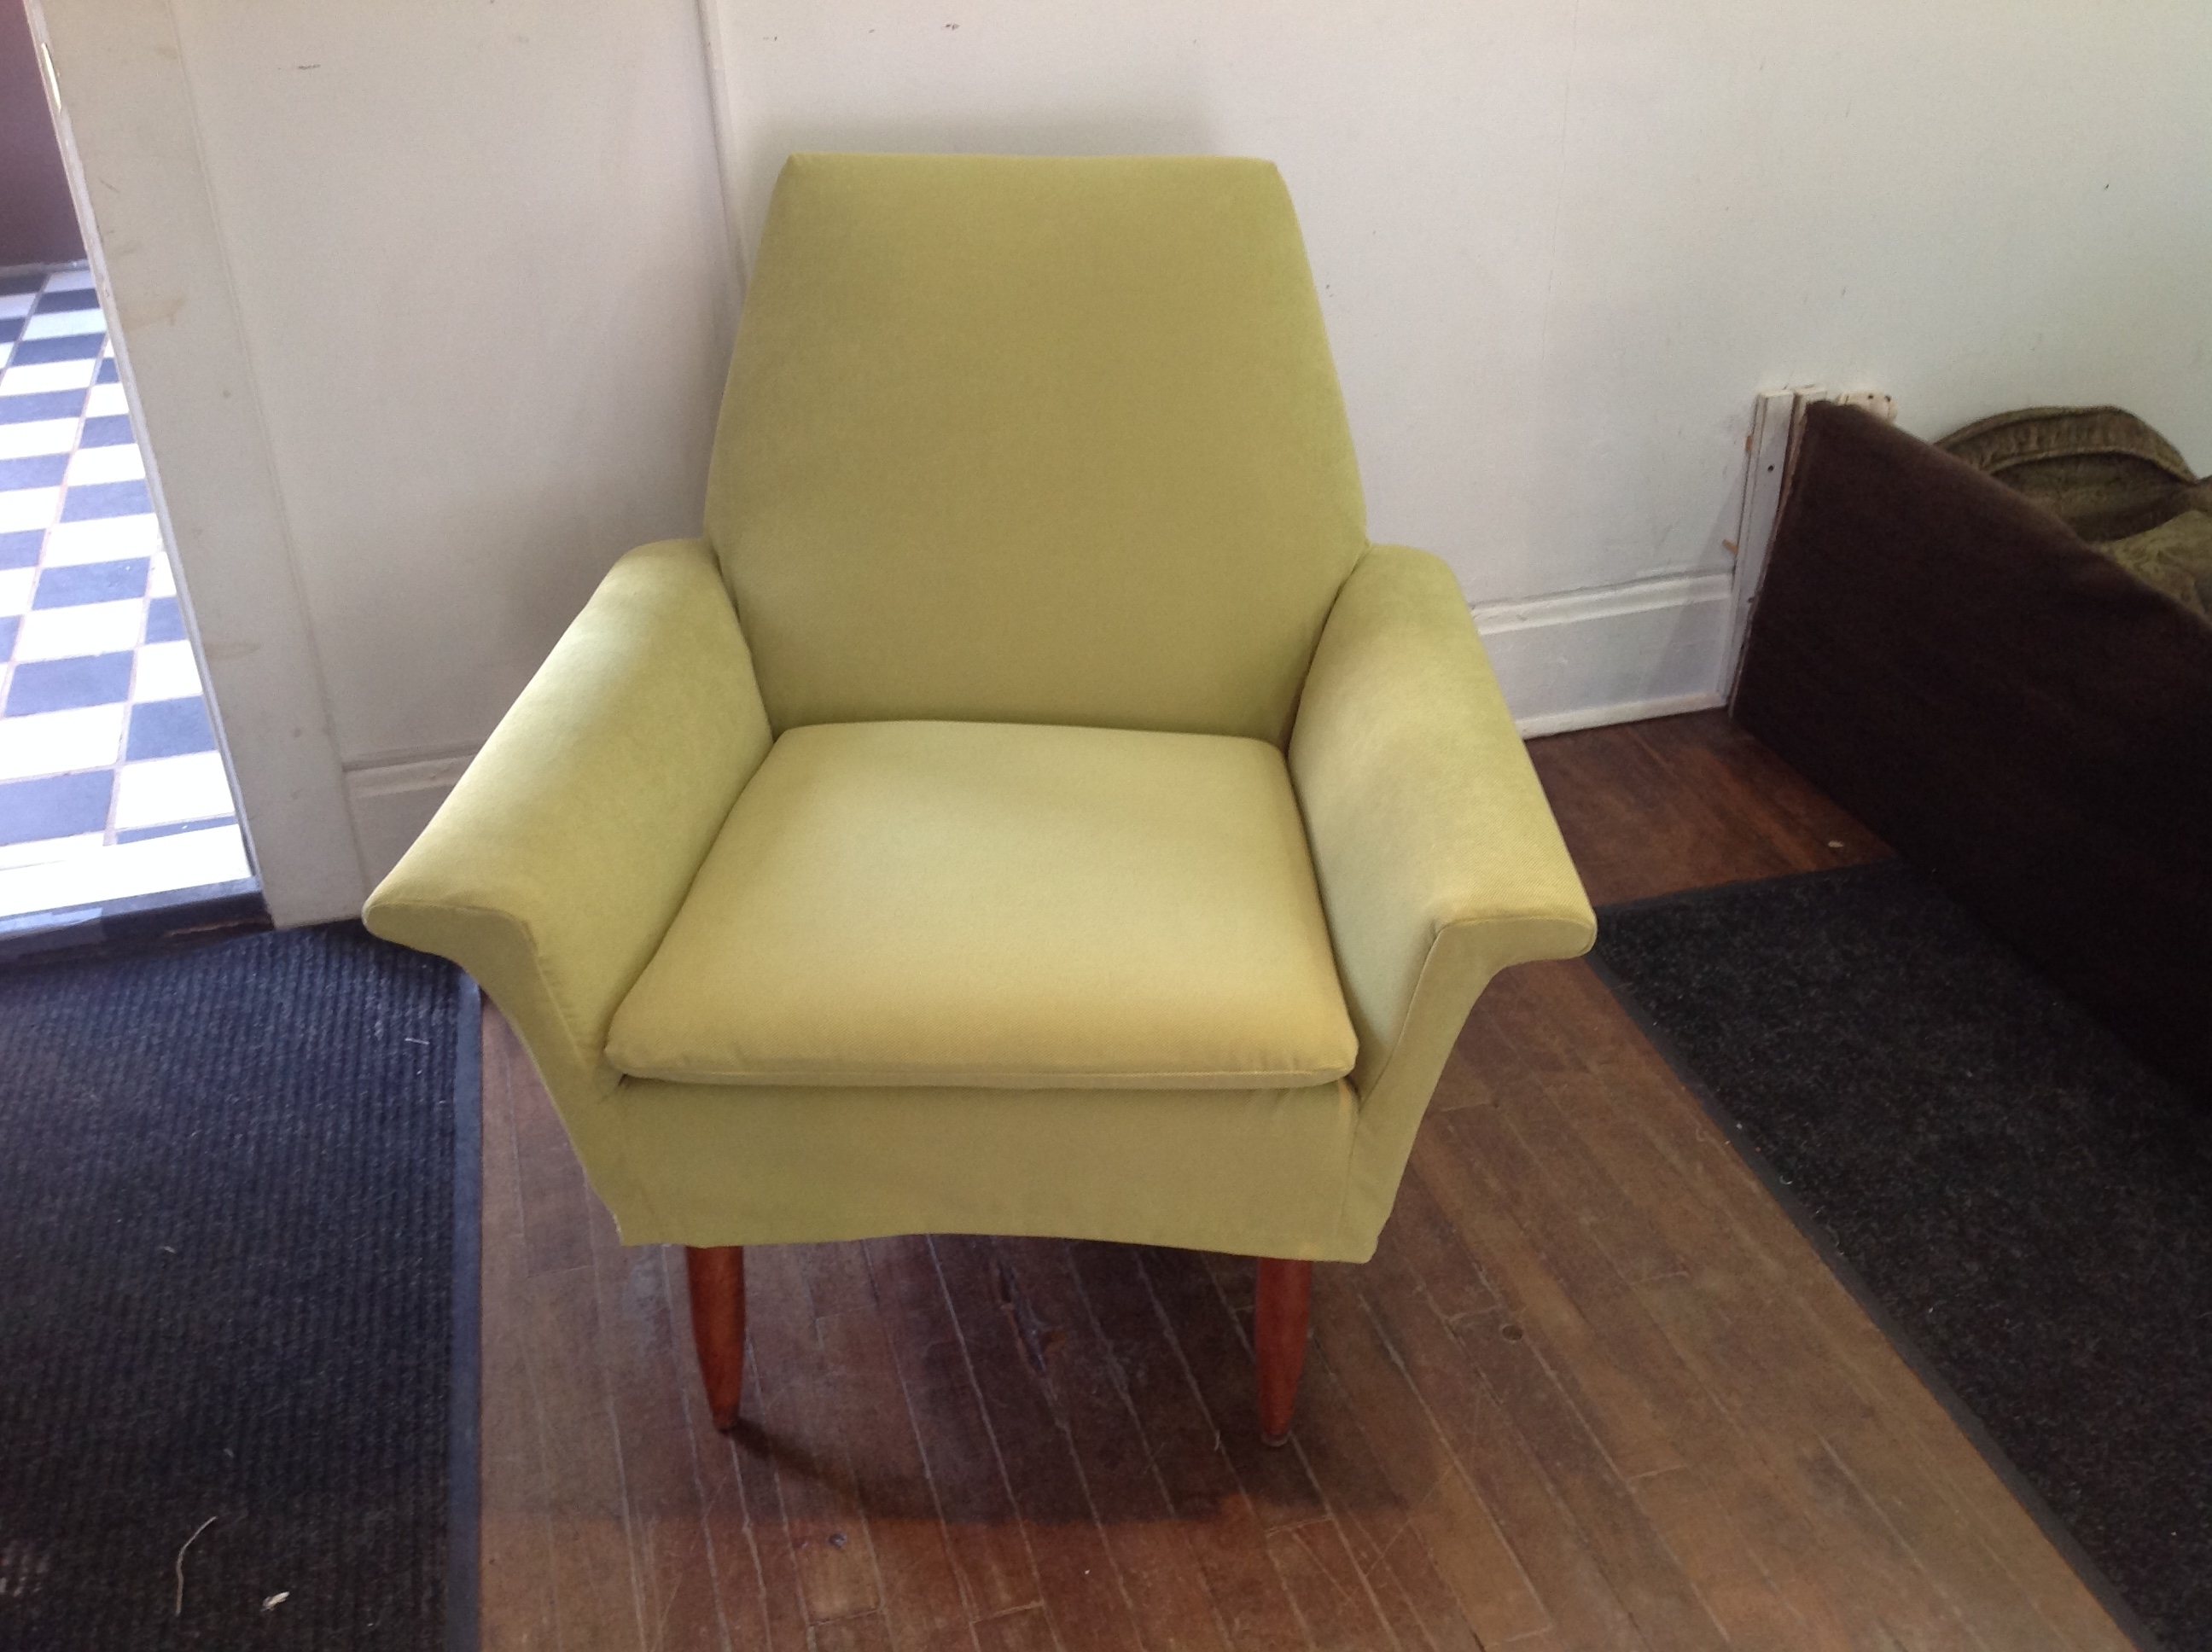 where to buy chair covers in toronto lazy boy wingback chairs custom slipcovers potato skins